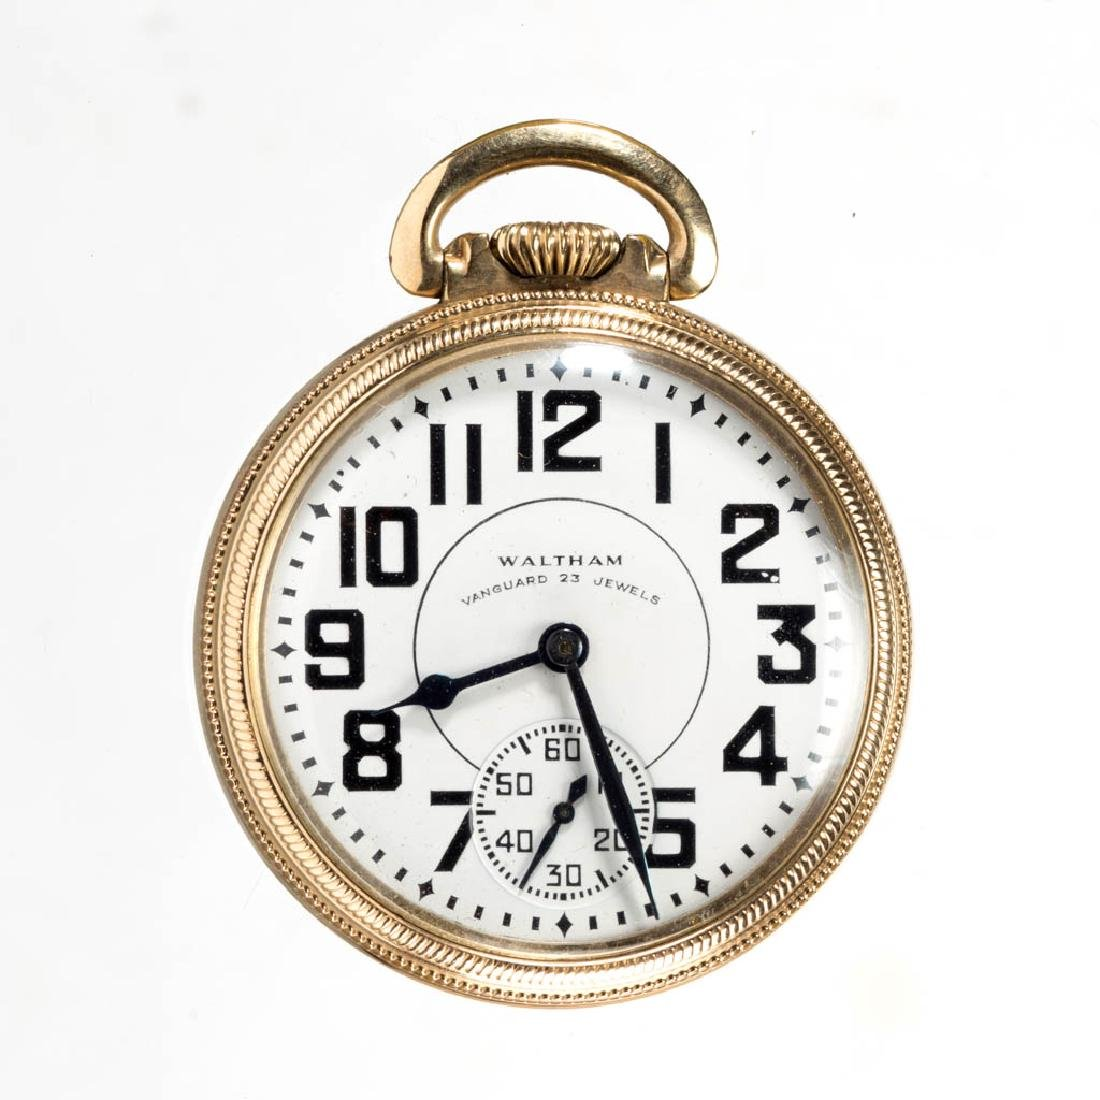 WALTHAM 23-JEWEL RAILROAD-GRADE POCKET WATCH